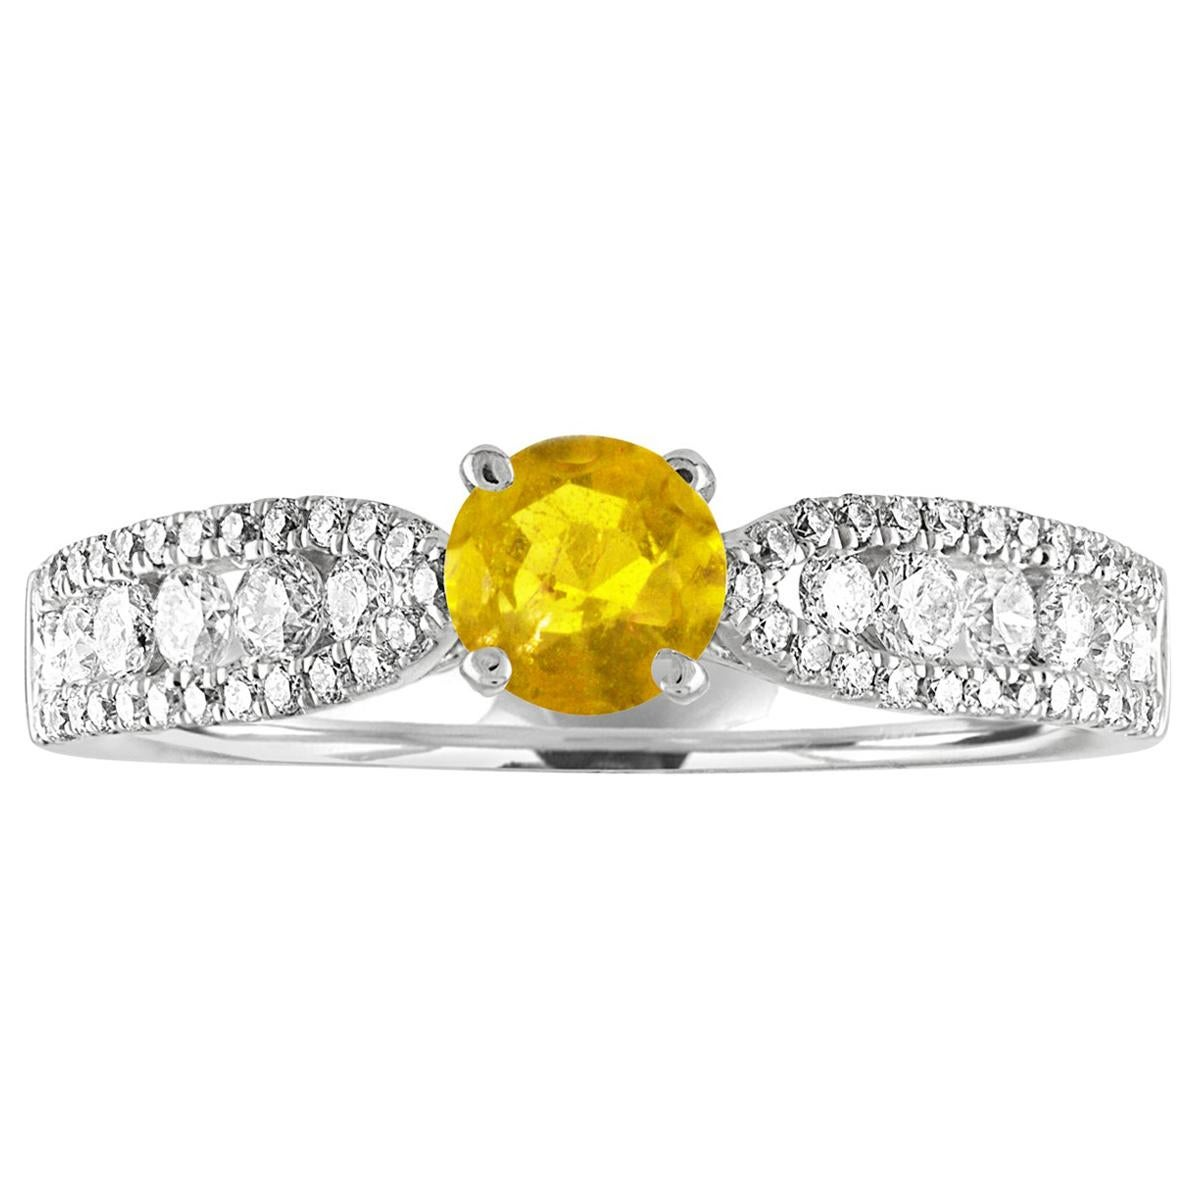 AGL Certified 0.42 Carat Yellow Sapphire Diamond Gold Ring